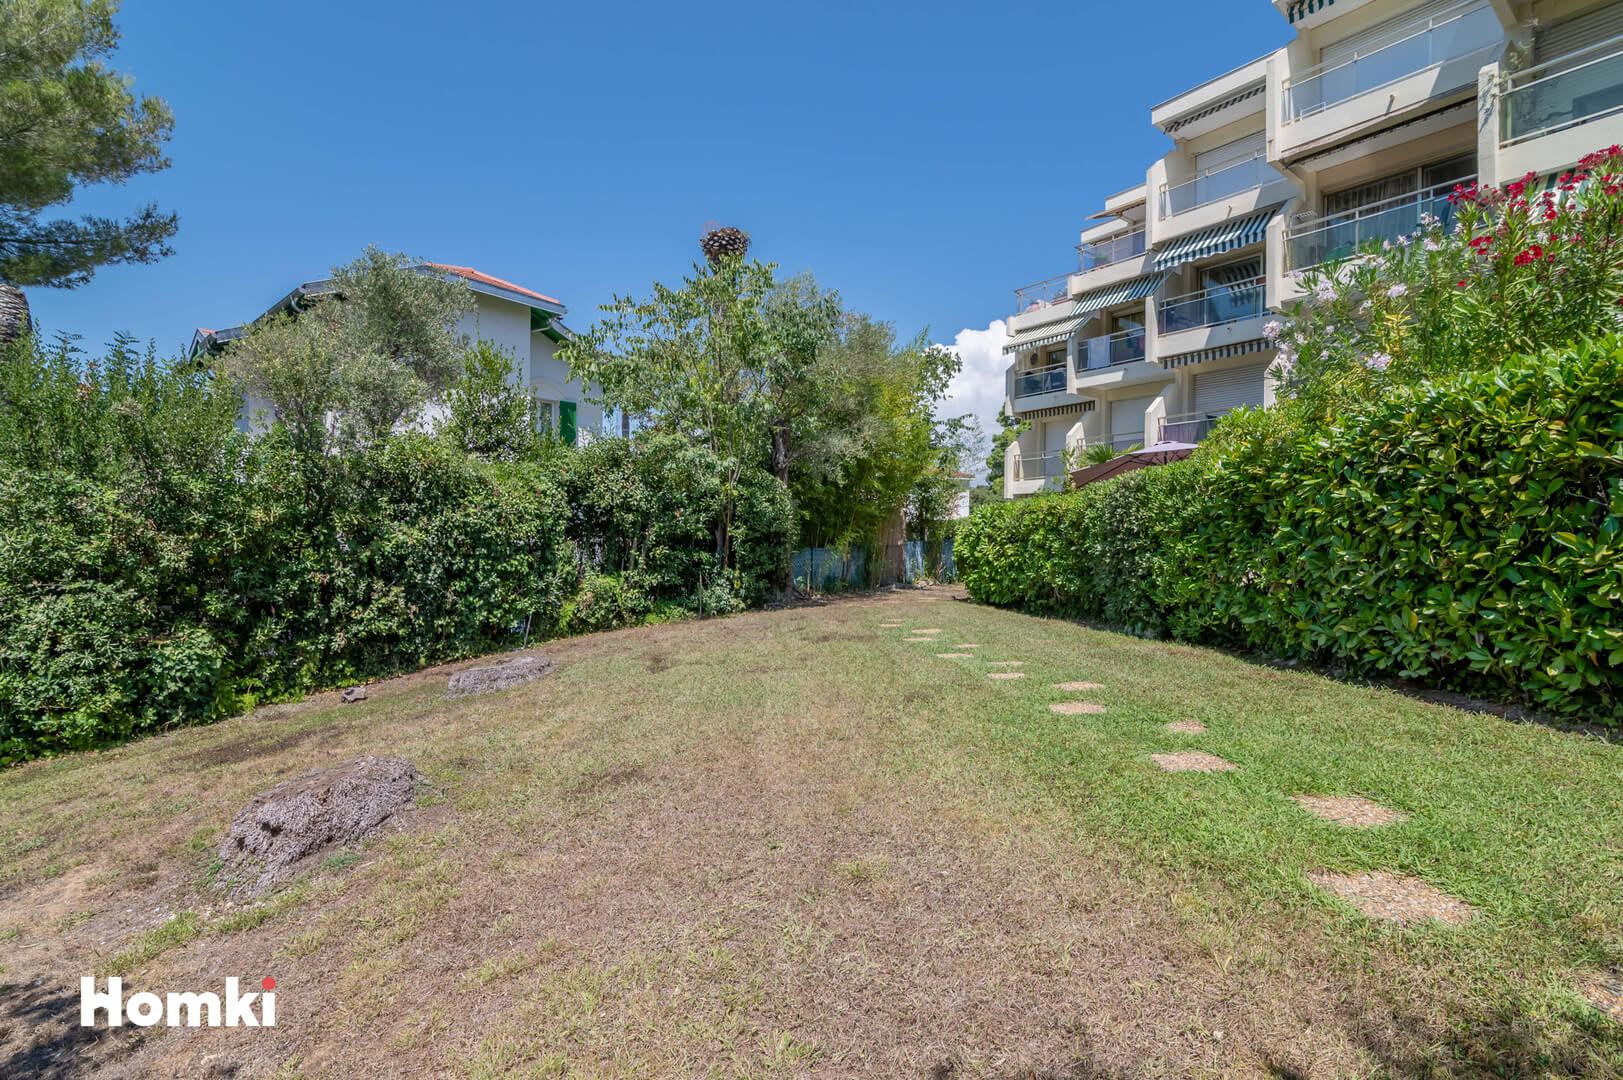 Homki - Vente Appartement  de 25.0 m² à Antibes 06160